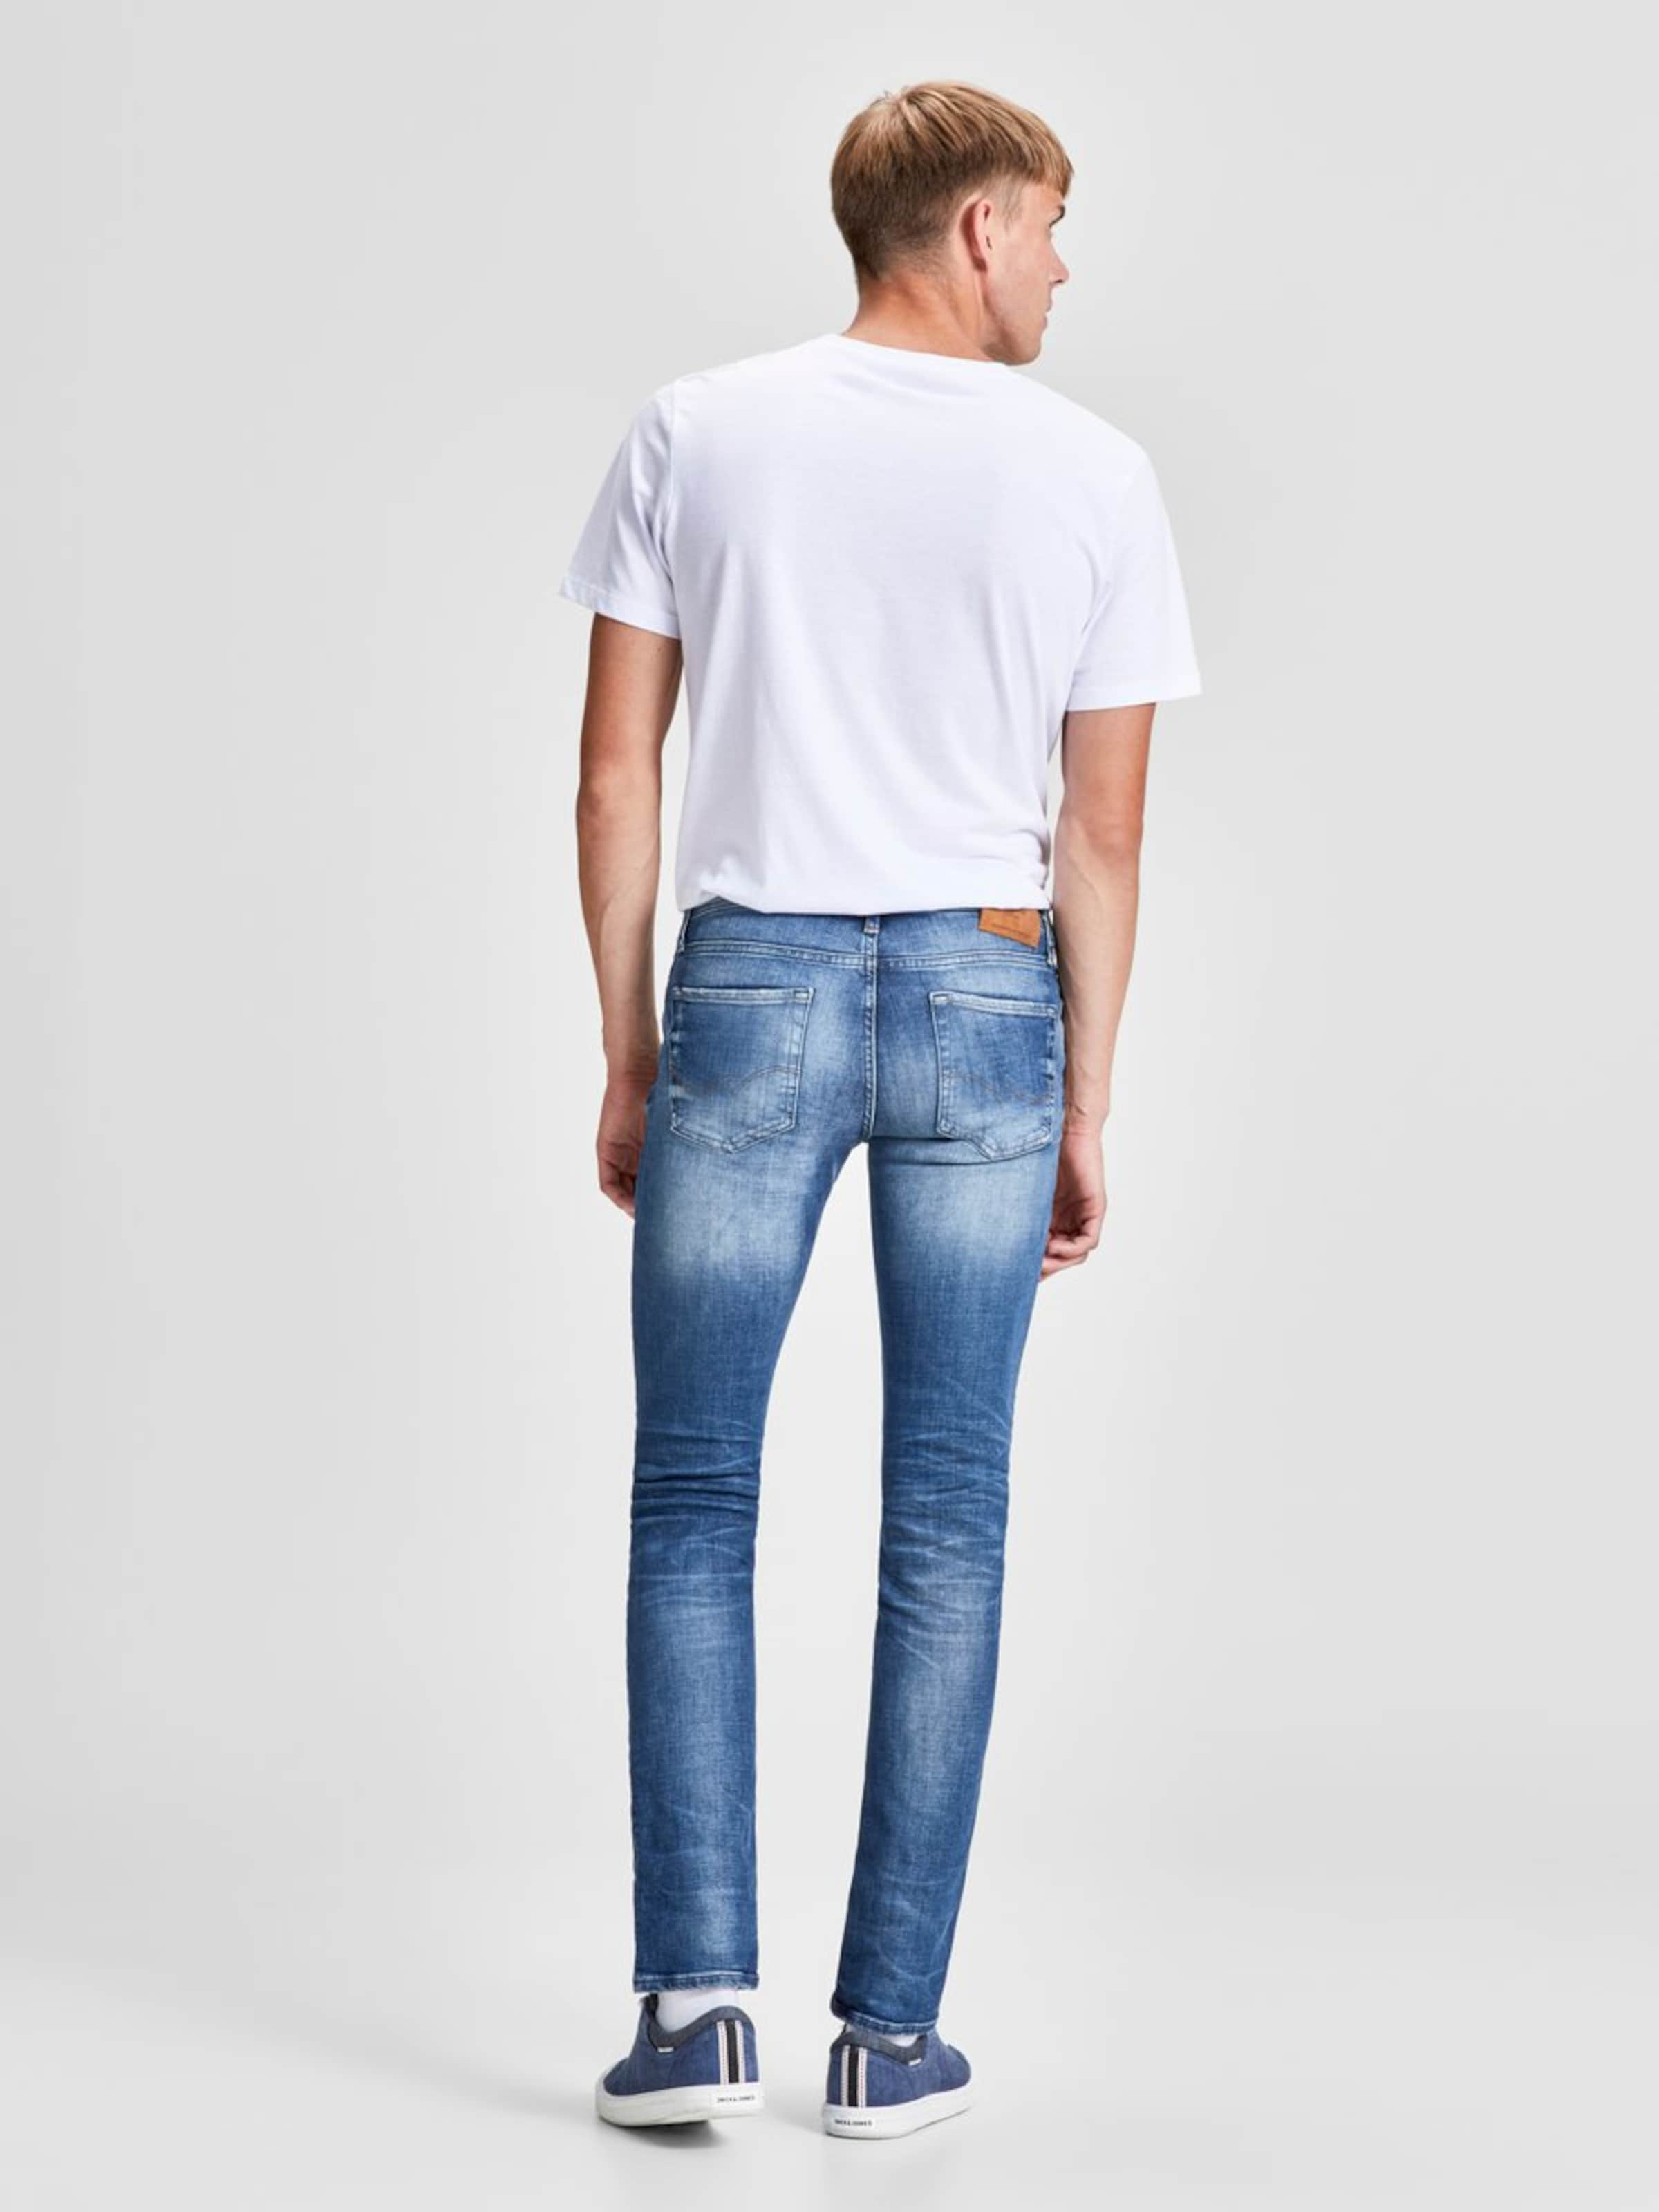 Jos Jones 312' Jackamp; Original Jean 'glenn Denim En Bleu 6Yf7vbgy